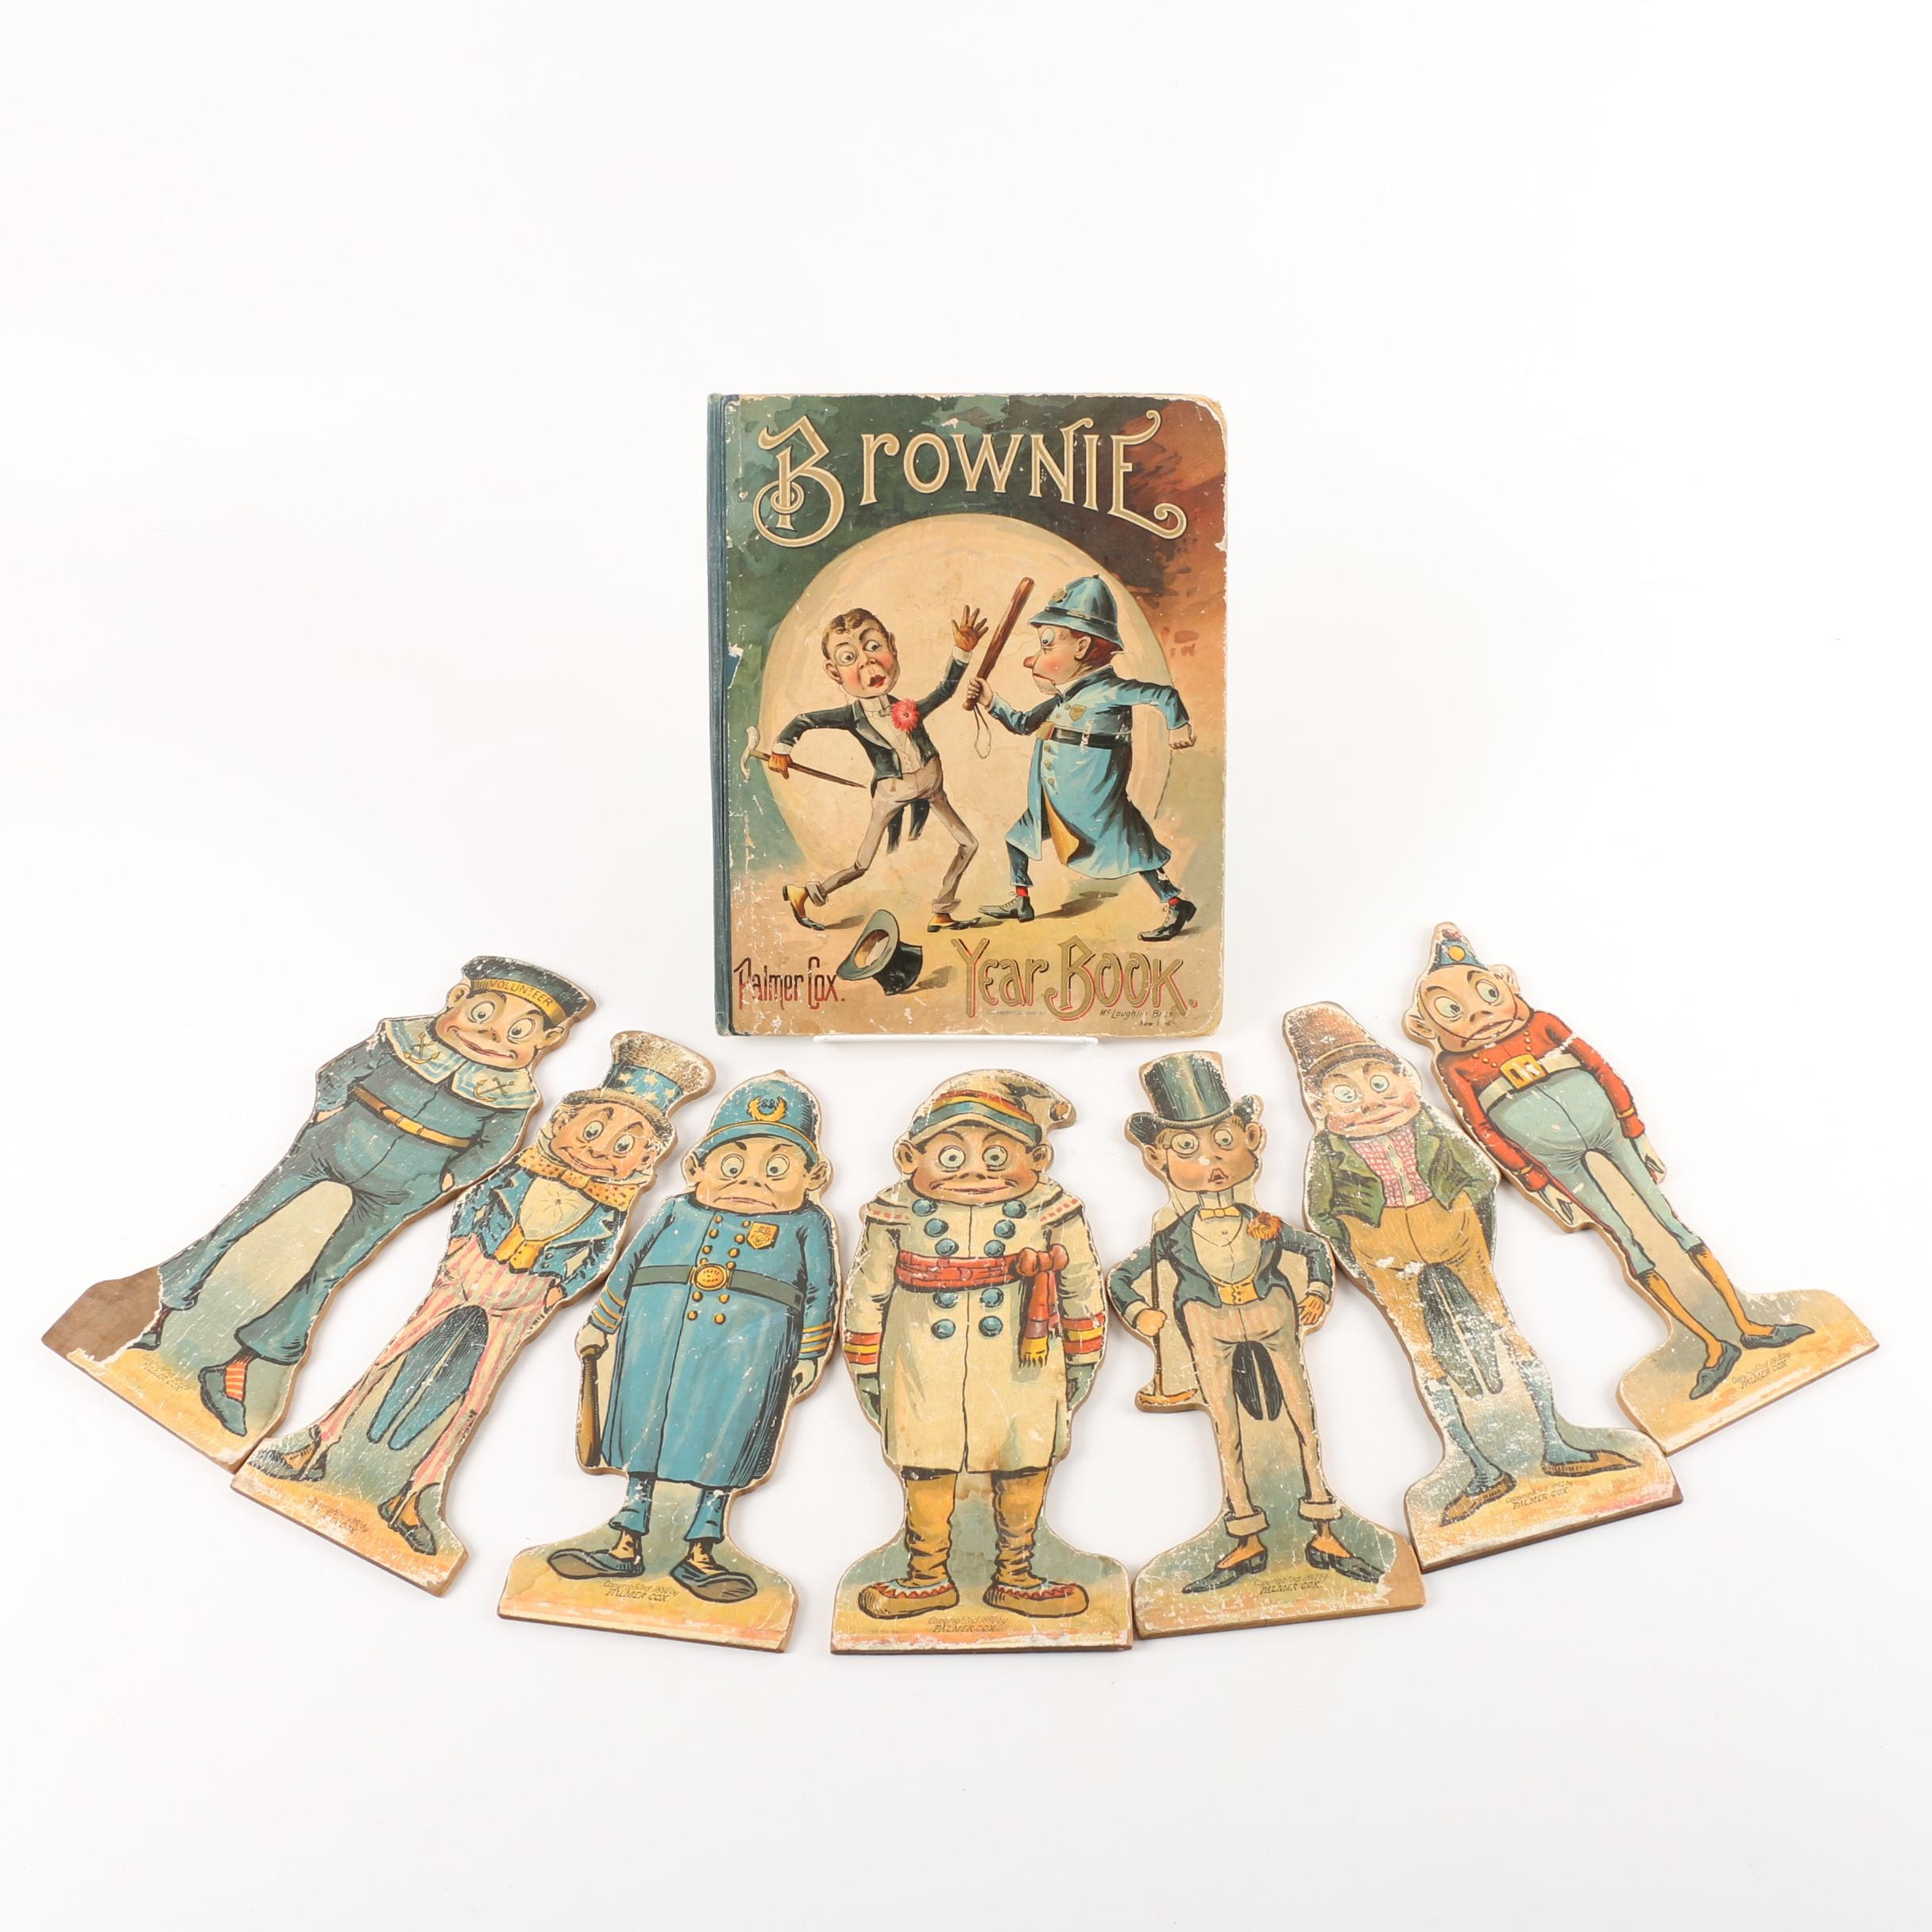 "1895 ""Brownie Year Book"" with Wooden Figurines"